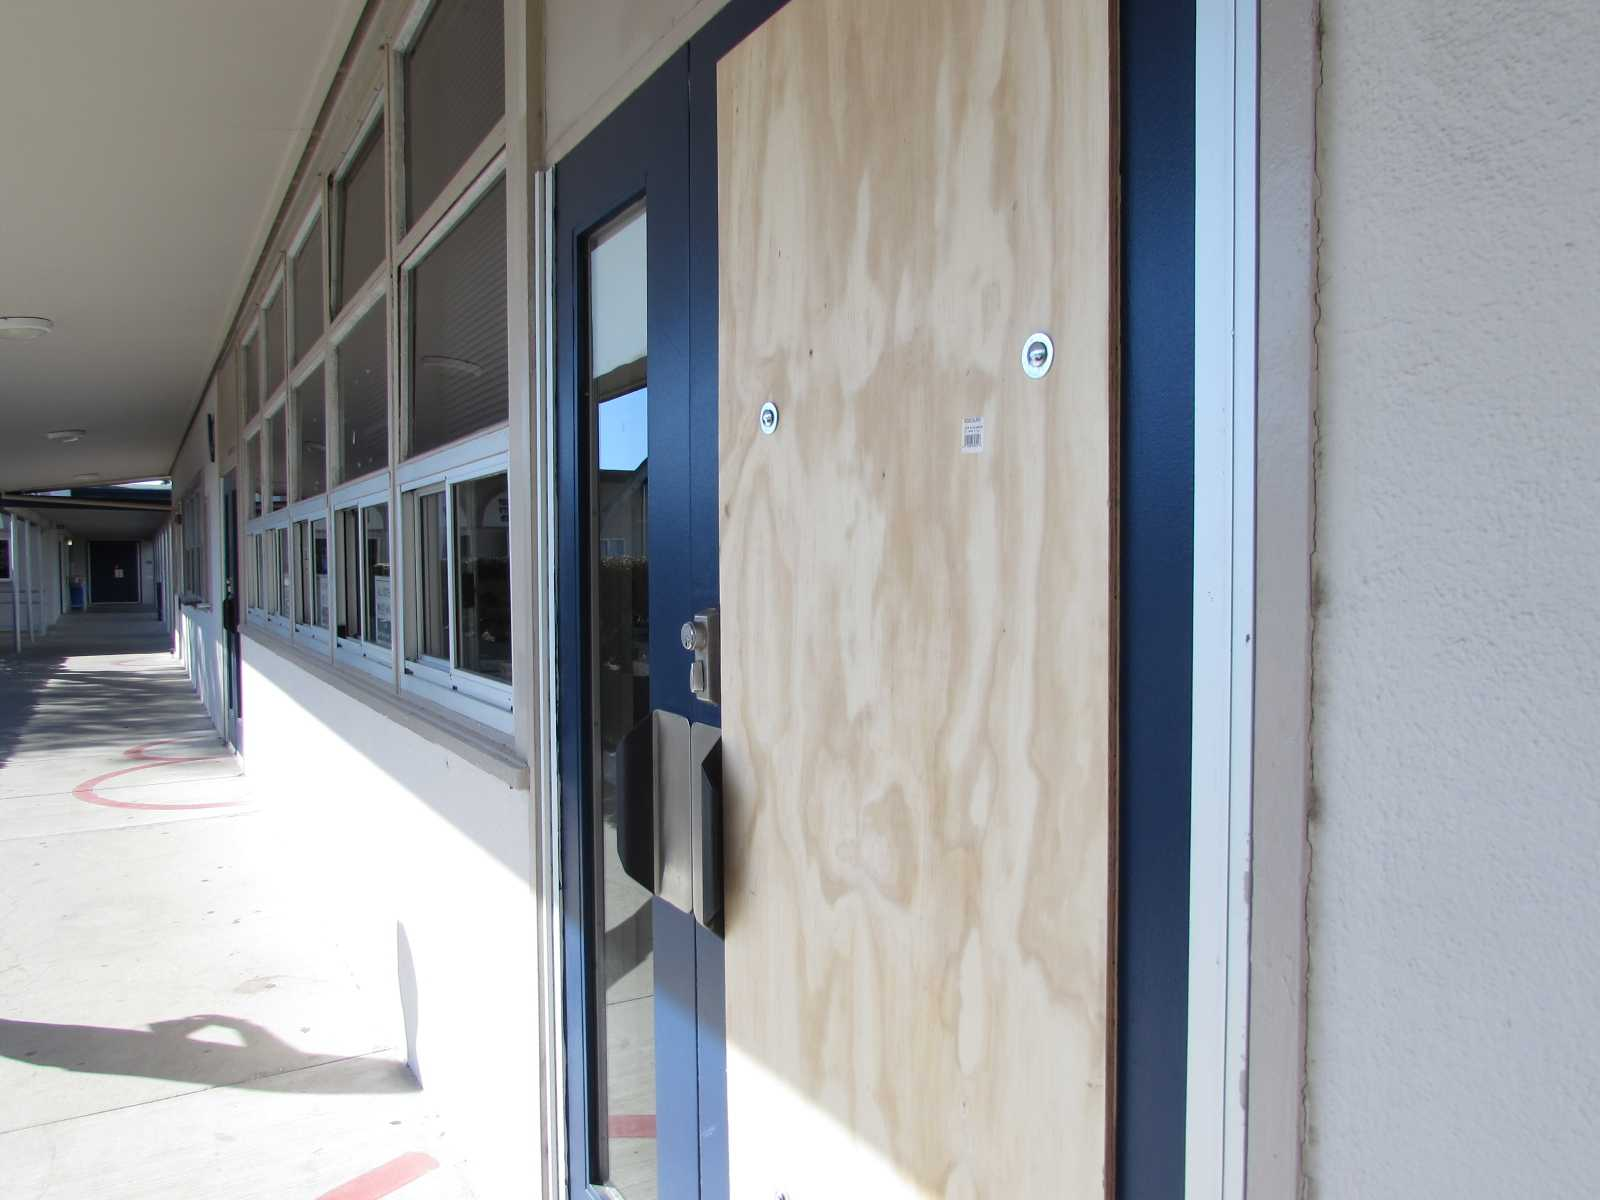 School+administrators+used+a+wooden+plank+as+a+ & Vandalism on campus: main office door broken \u2013 The Stinger